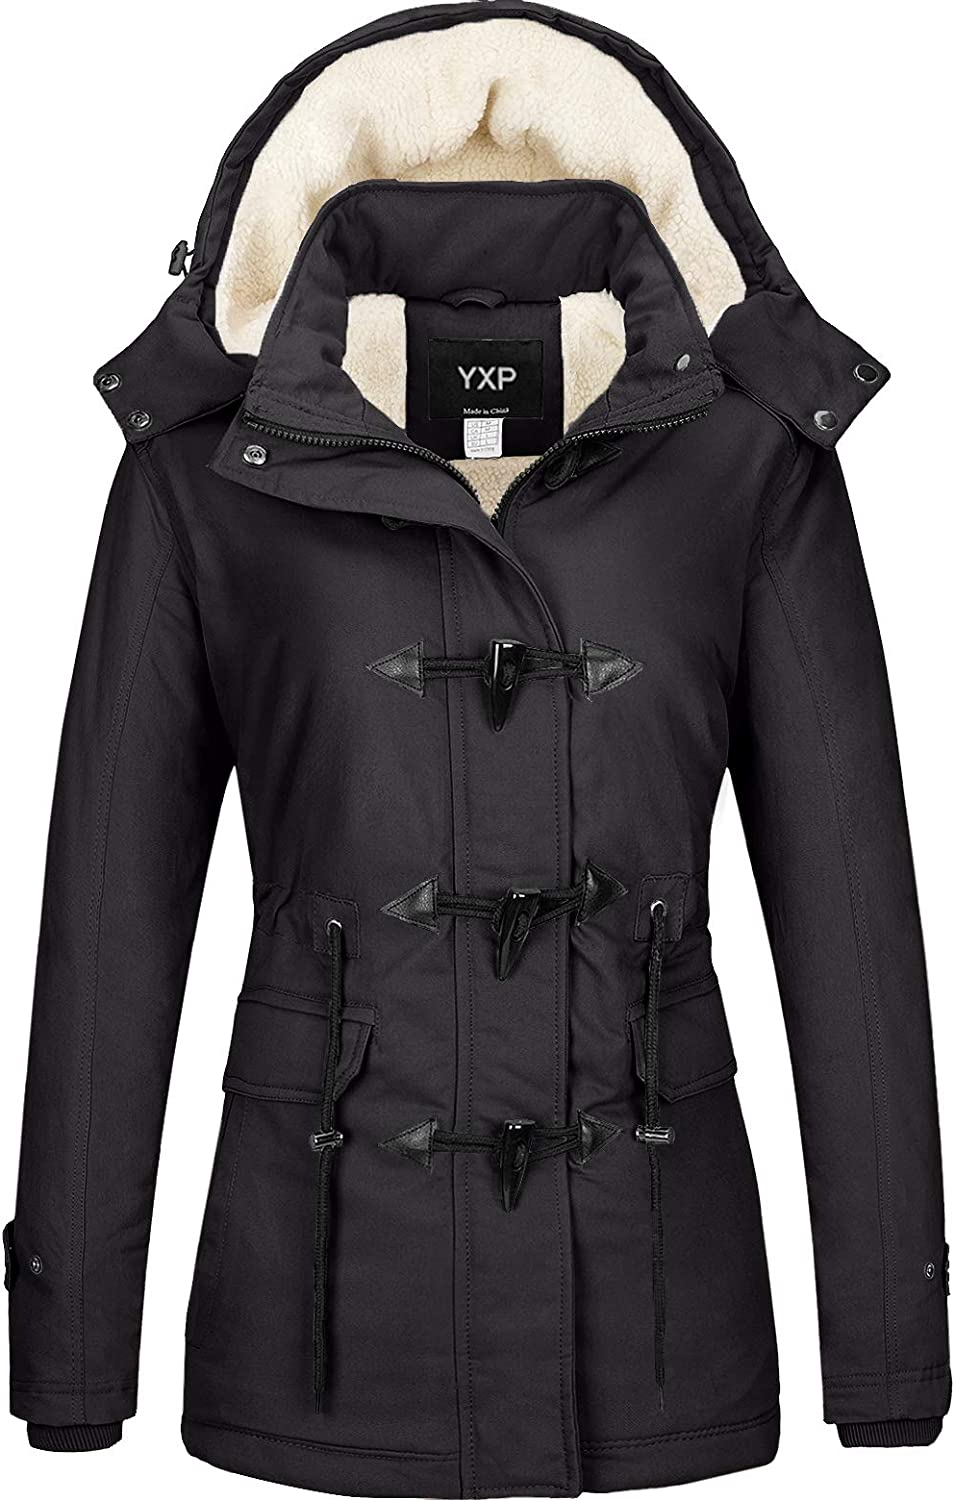 YXP Mens Winter Thicken Cotton Coat Warm Puffer Jacket with Removable Fur Hood